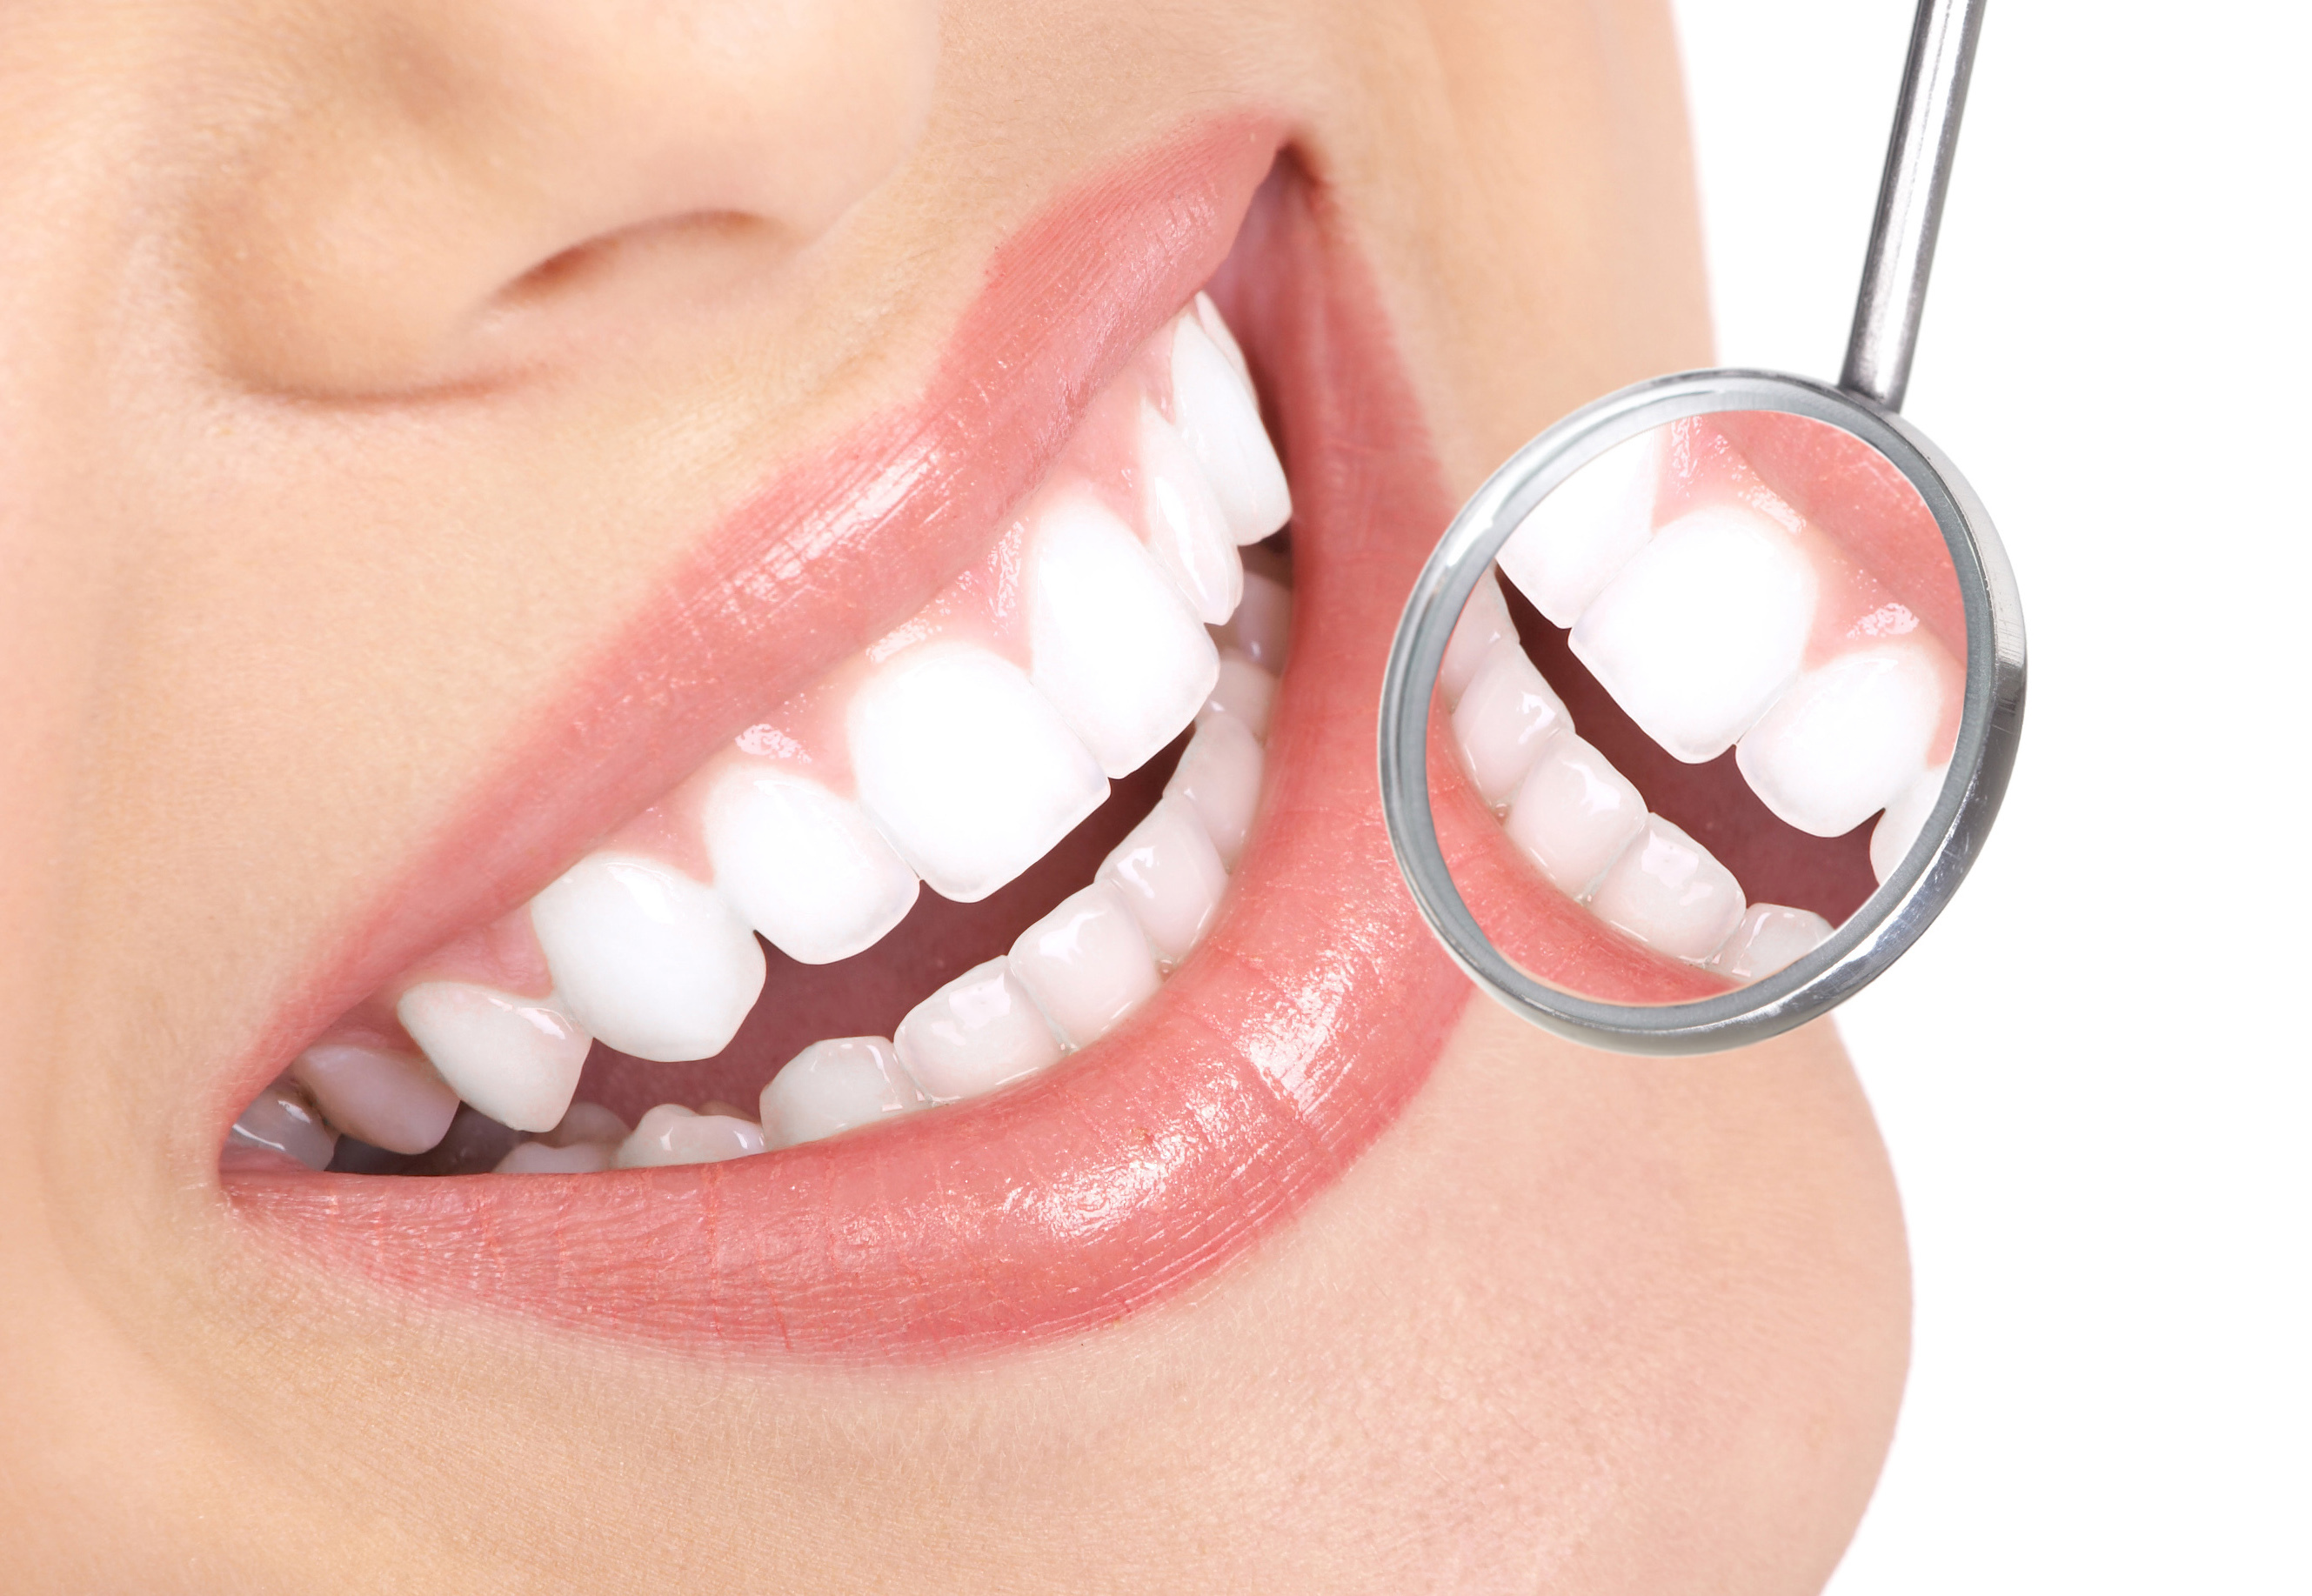 Dental Coverage Plans - Alternatives and Options For Your Coverage